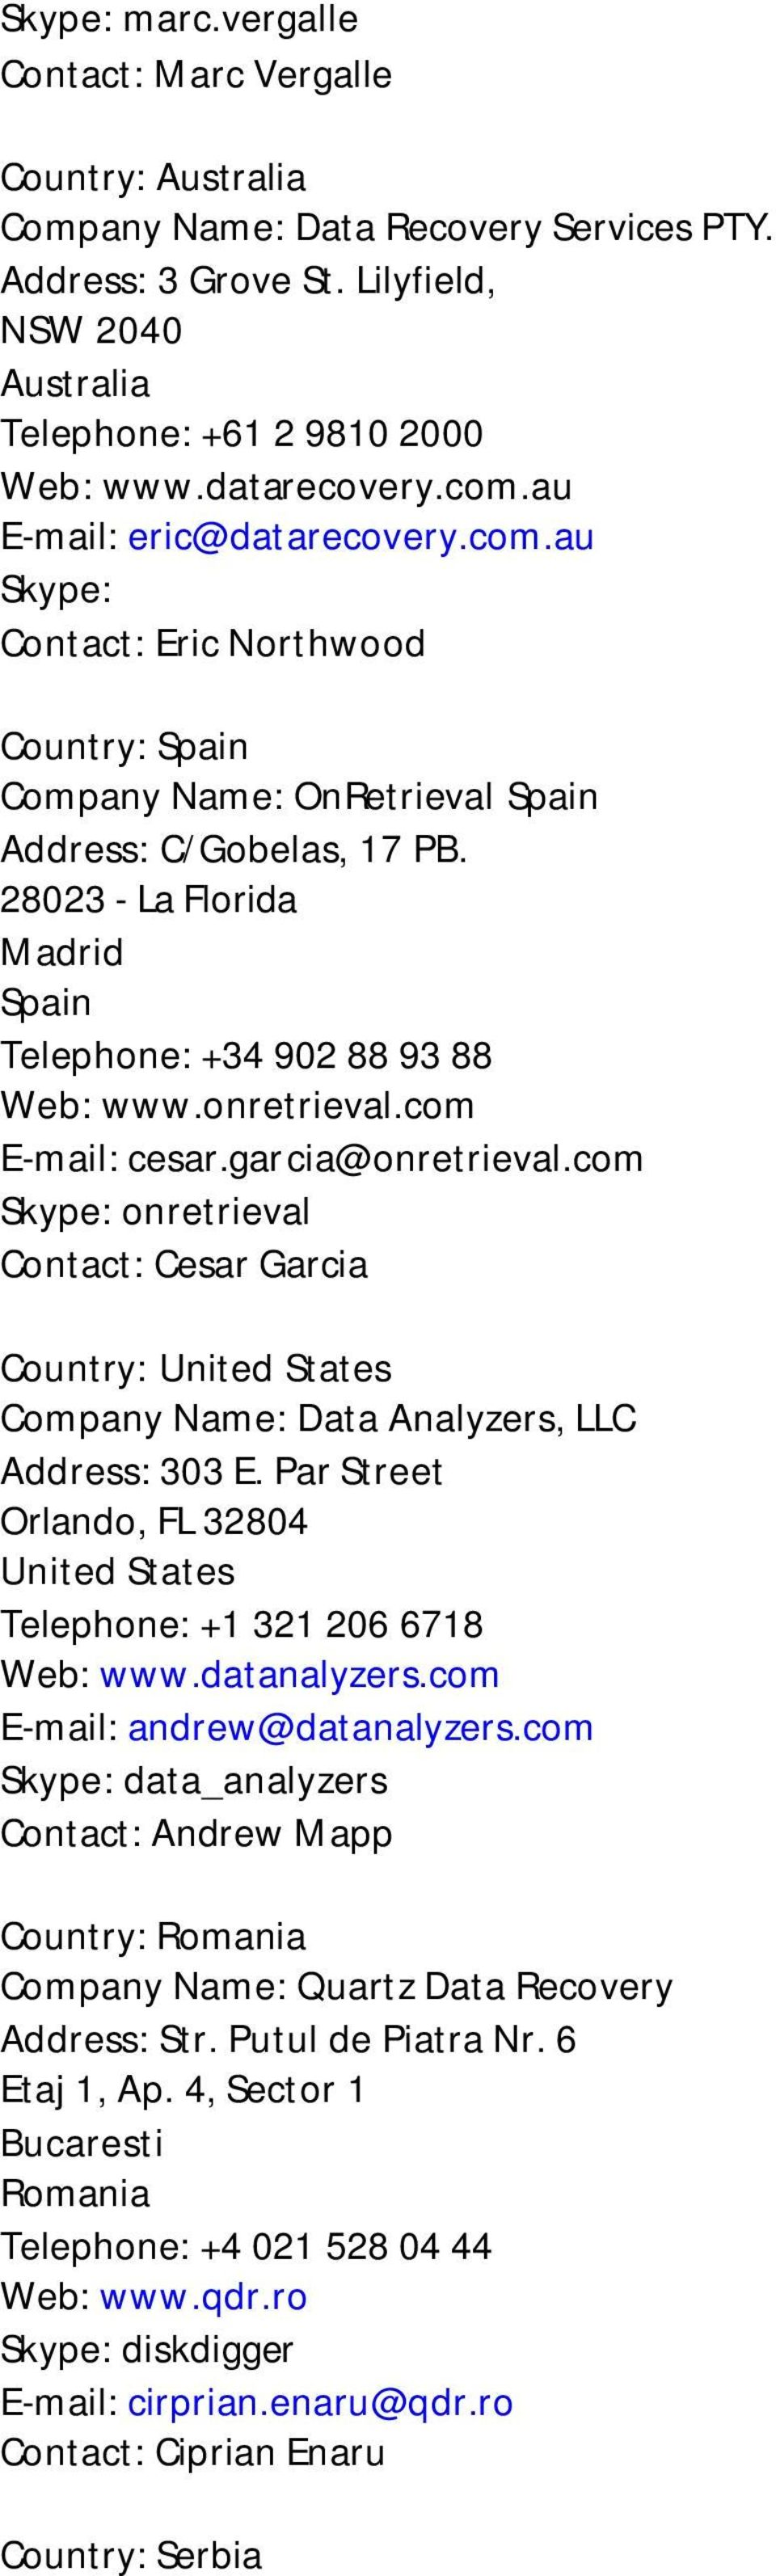 28023 - La Florida Madrid Spain Telephone: +34 902 88 93 88 Web: www.onretrieval.com E-mail: cesar.garcia@onretrieval.